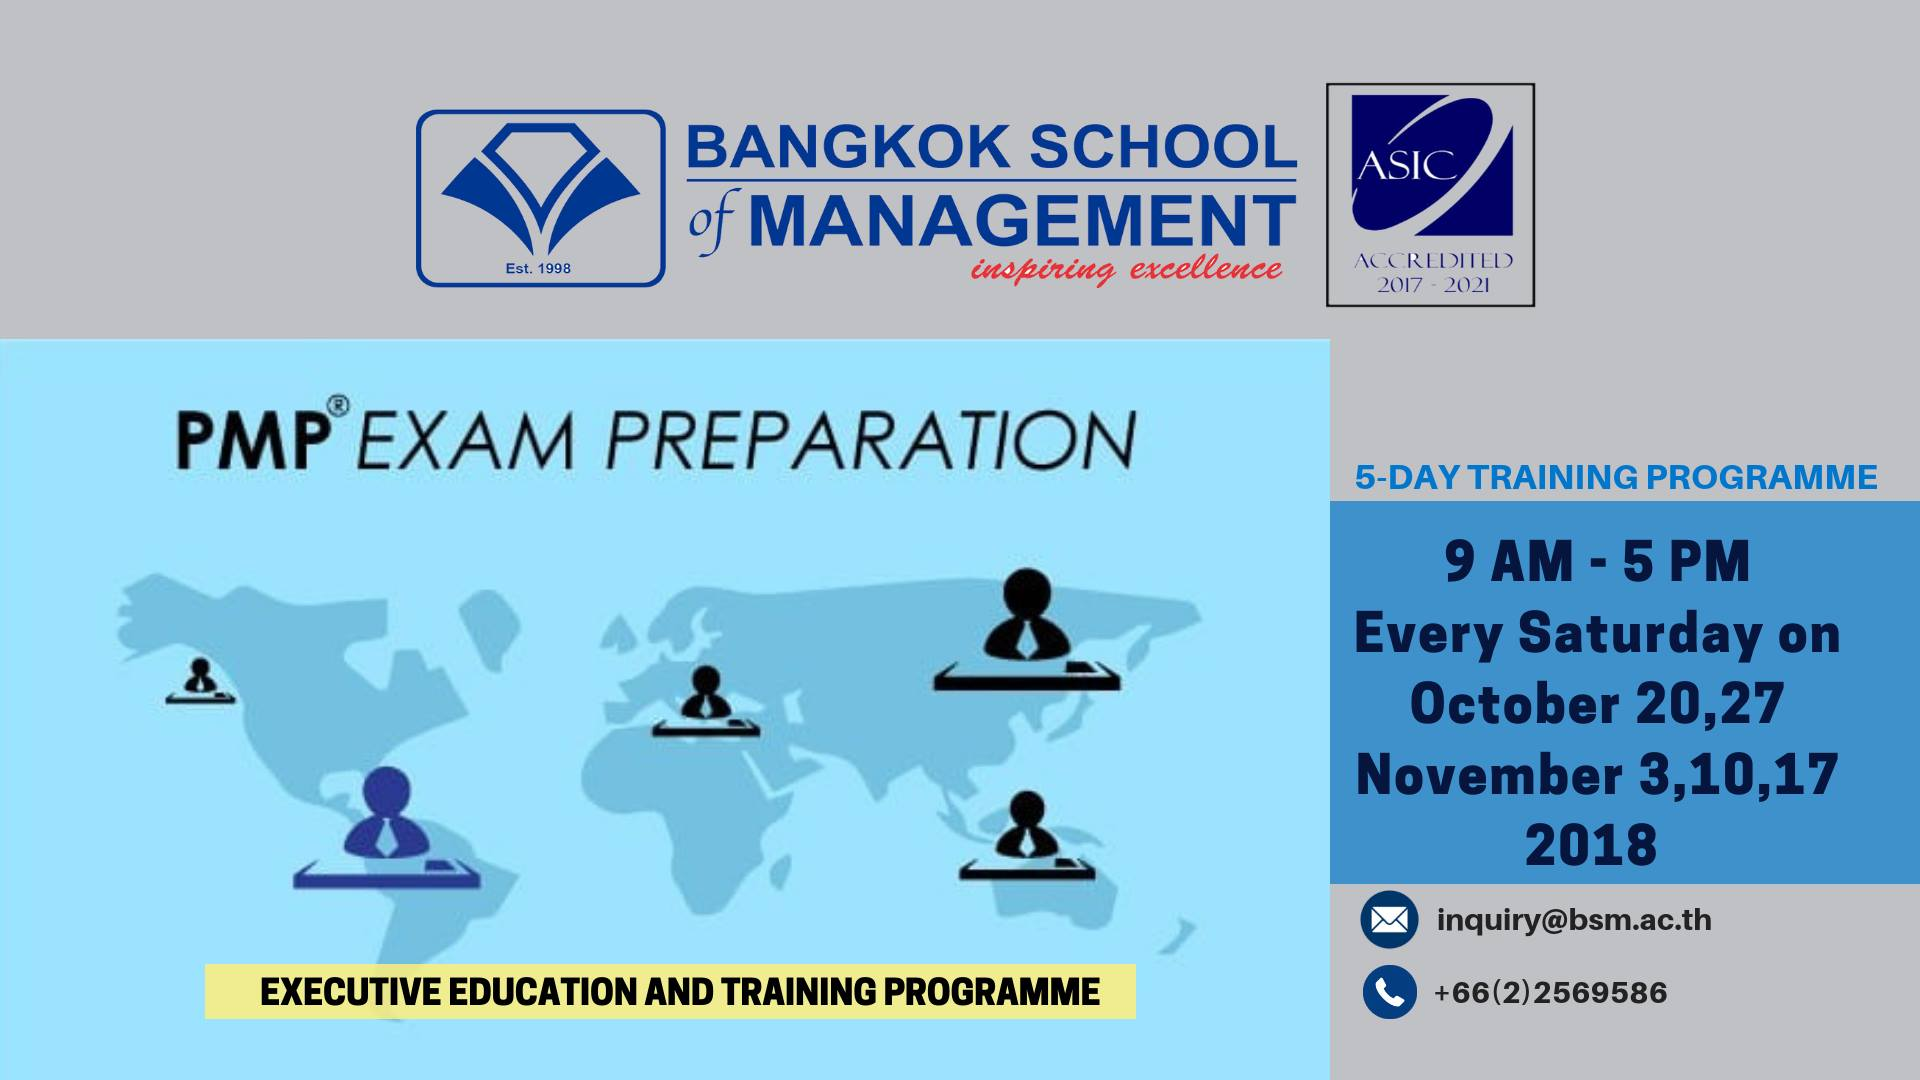 Date: October 20 &#038; November 3,10 and 17 <br><br>Training Programme: PMP Exam Preparation